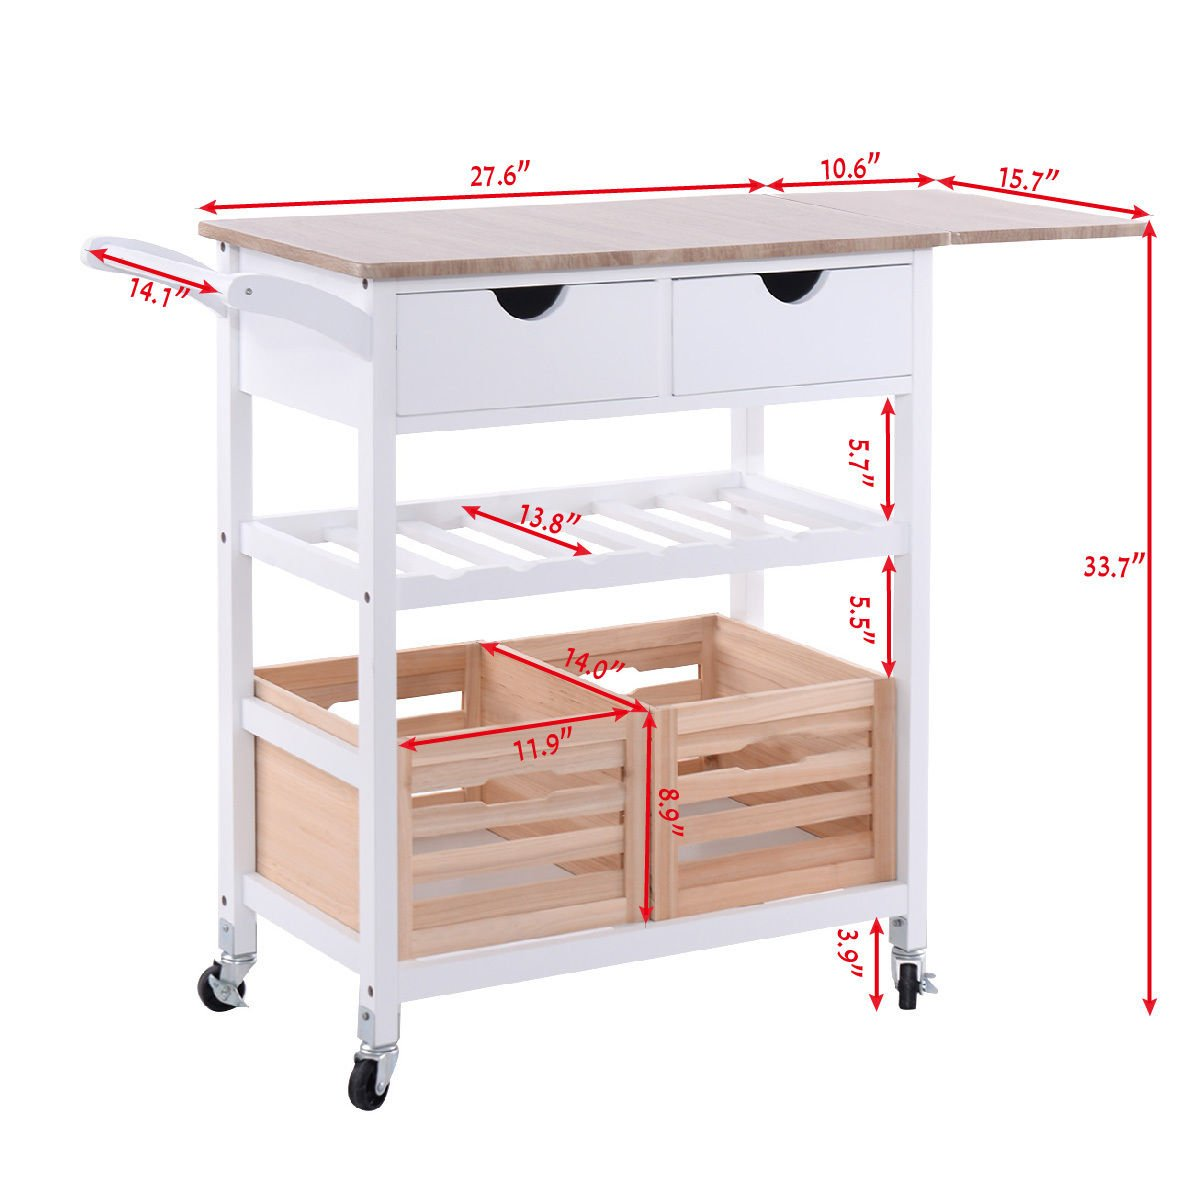 Costzon Kitchen Trolley Island Cart Dining Storage with Drawers Basket Wine Rack by Costzon (Image #3)